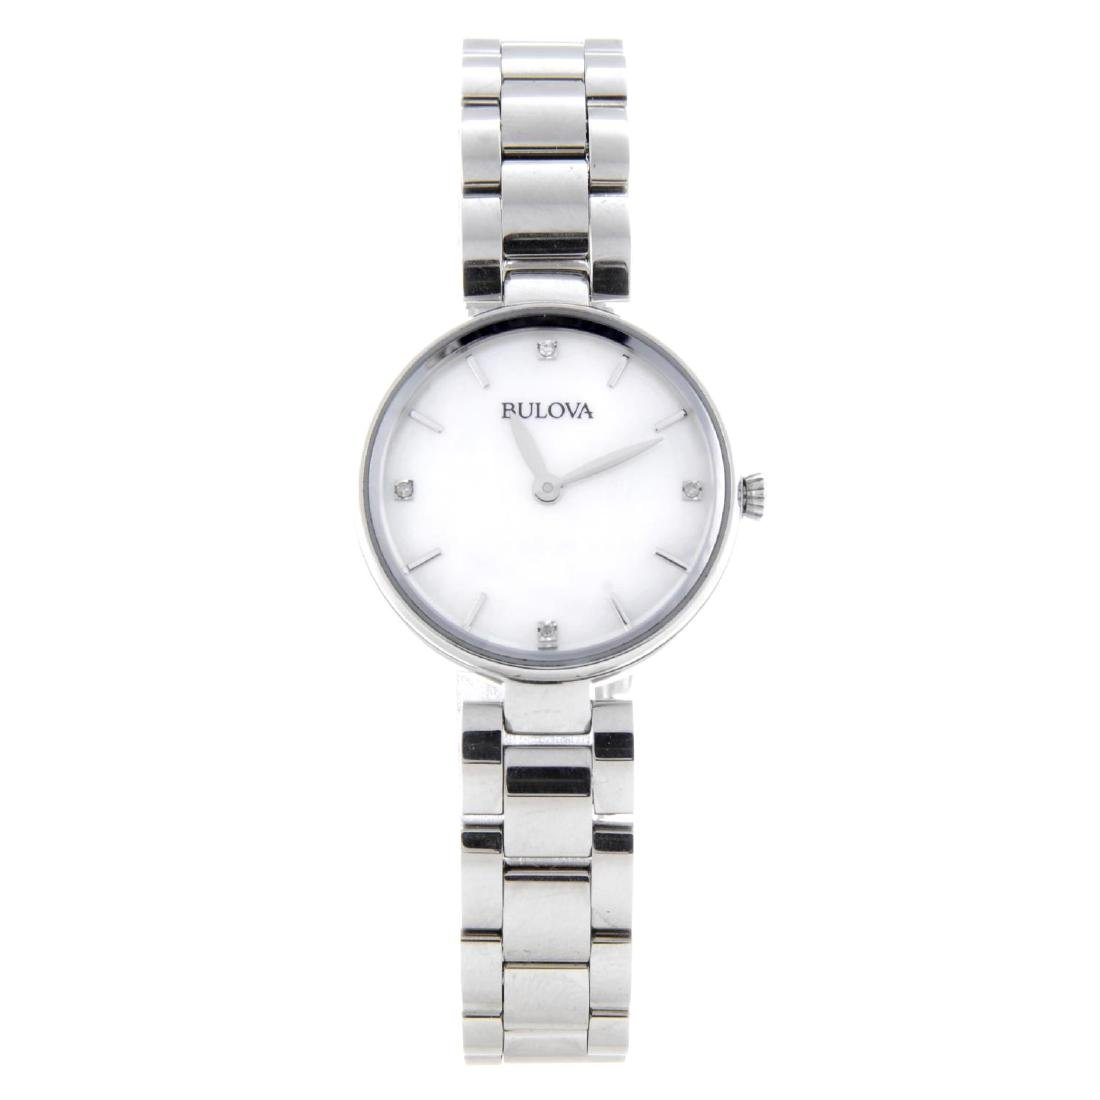 BULOVA - a lady's Diamond Gallery bracelet watch.